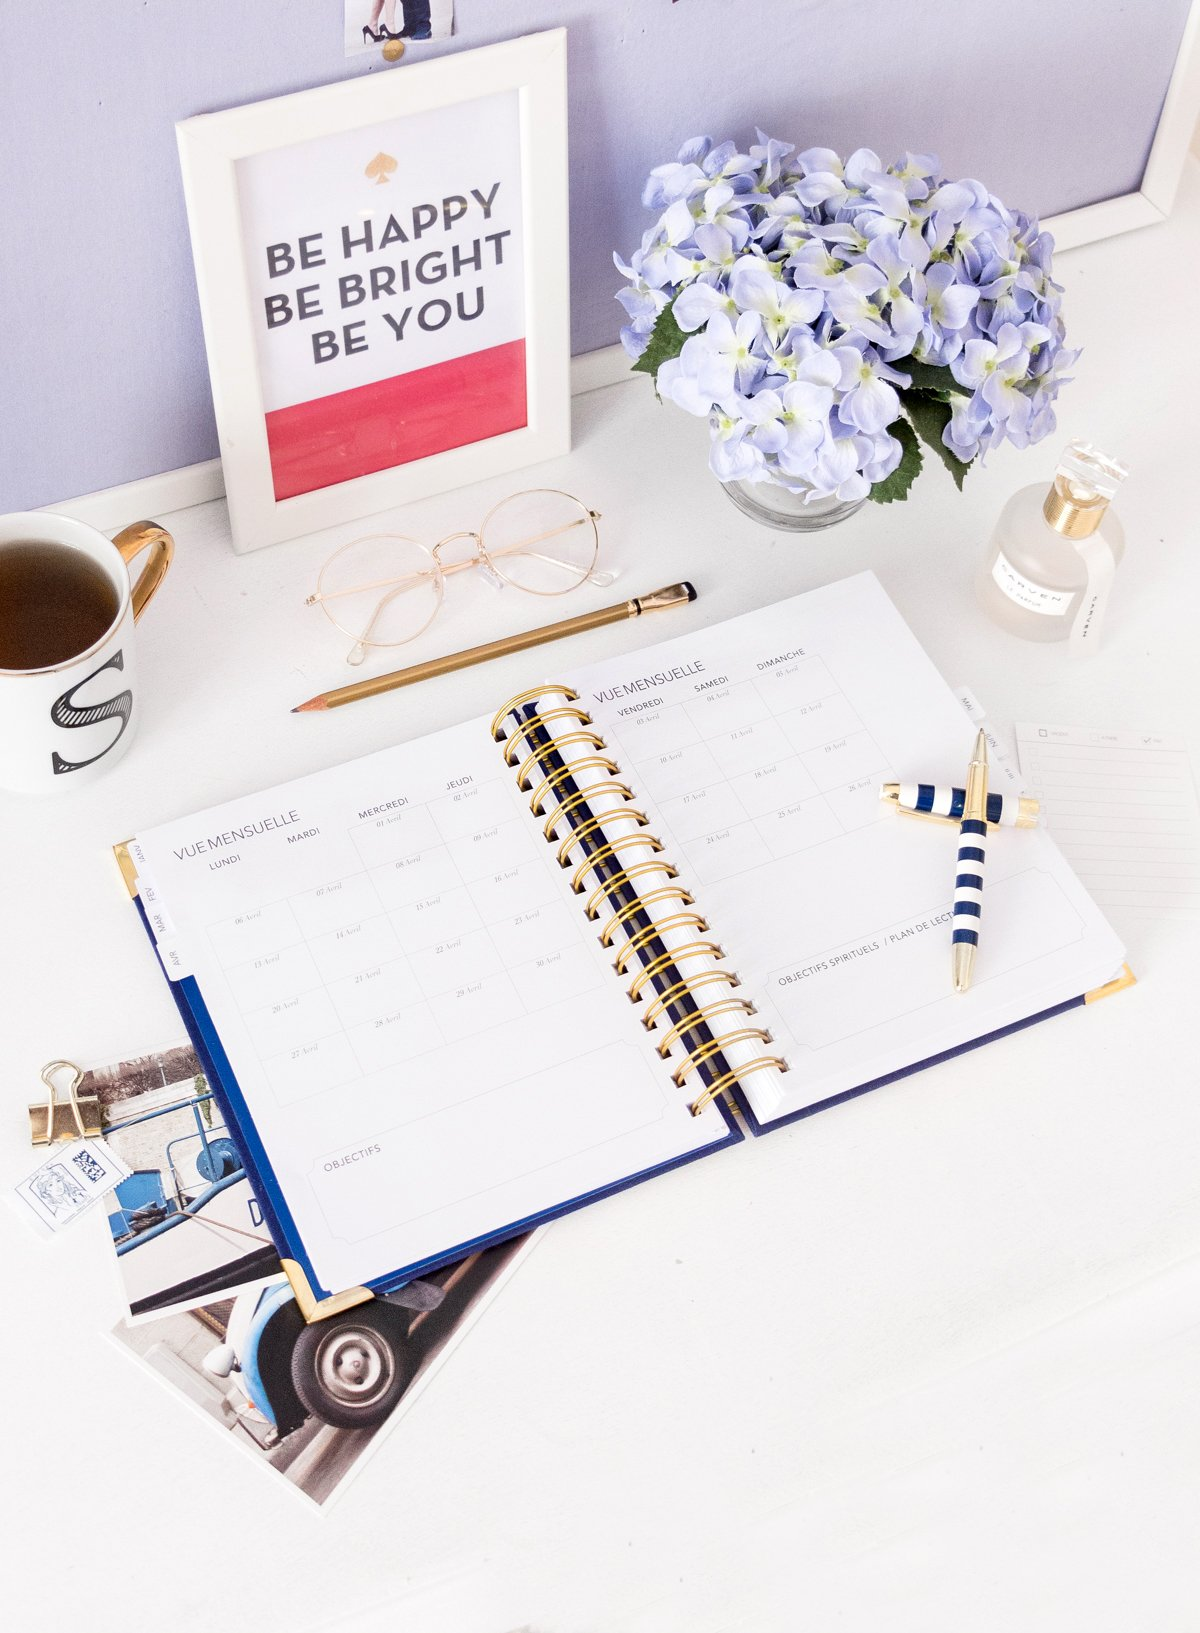 Embrace Planner 2020 - Kit Planner Agenda Chrétien Planification Organisation - Iconic Stripes